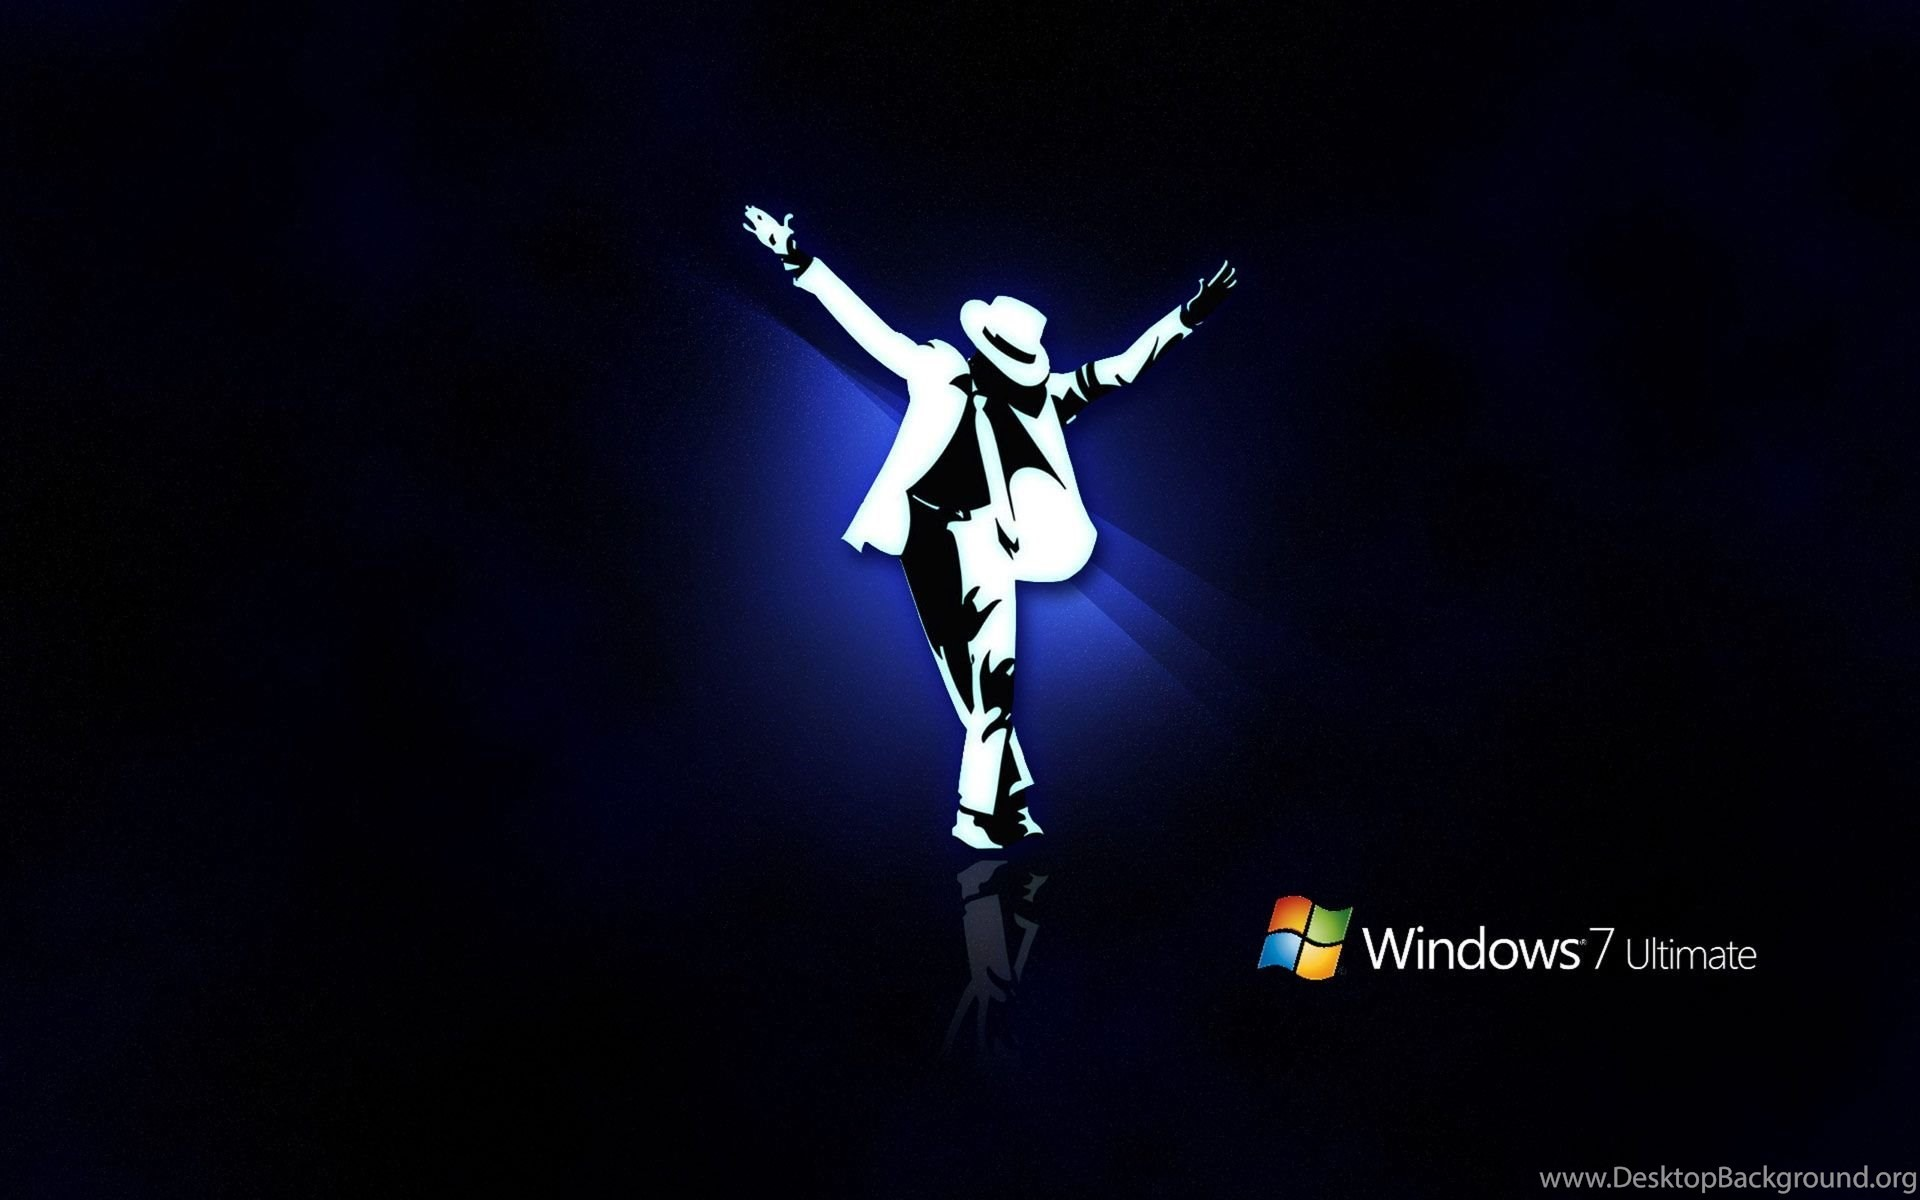 Windows 7 Ultimate Wallpaper Hd 76 Pictures